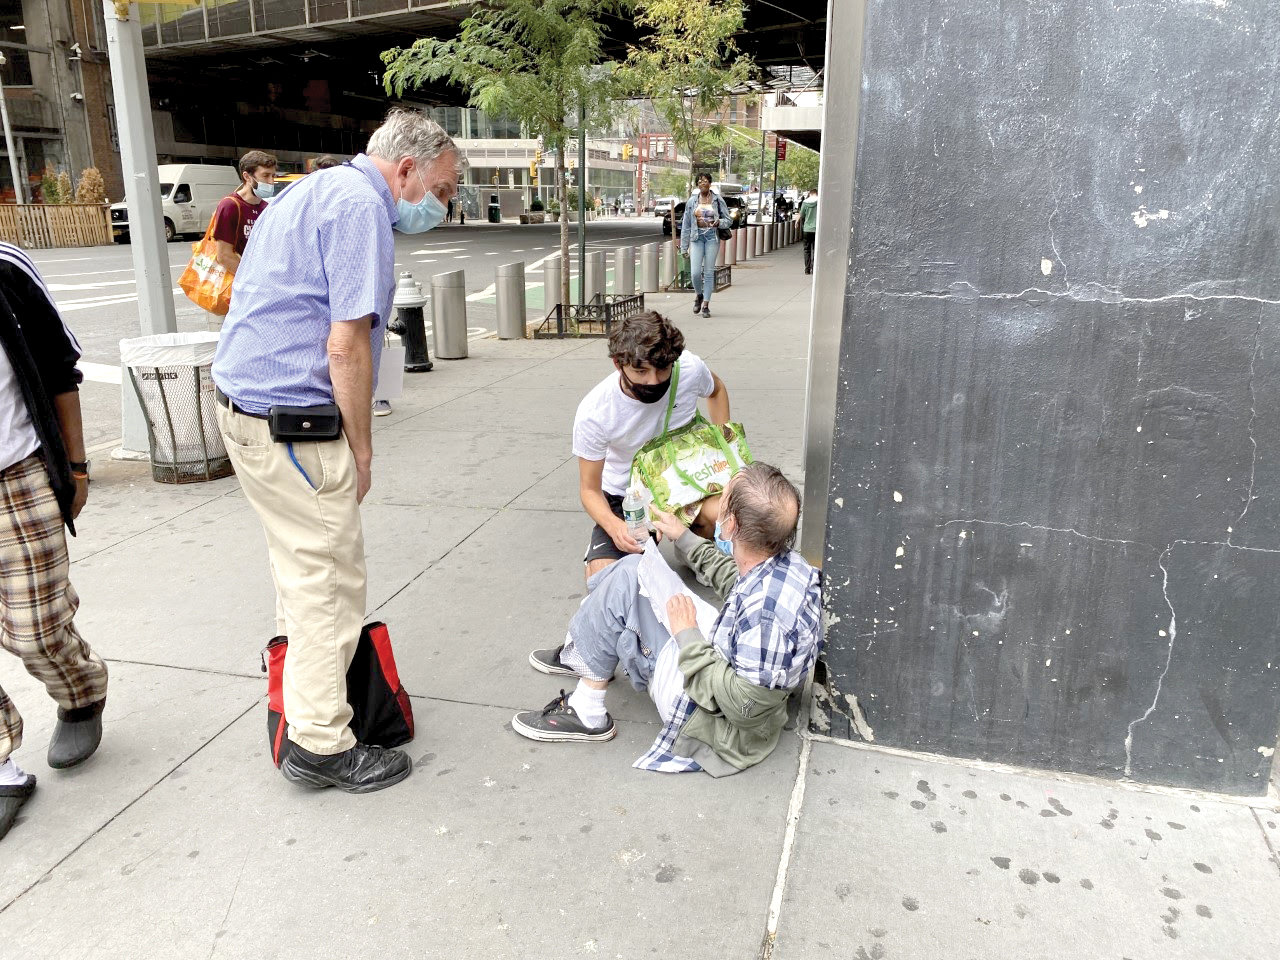 Ed Greene, left, co-pastoral director of LAMP, and NYU freshman Luis Gonzalez provide assistance to a man in Manhattan.